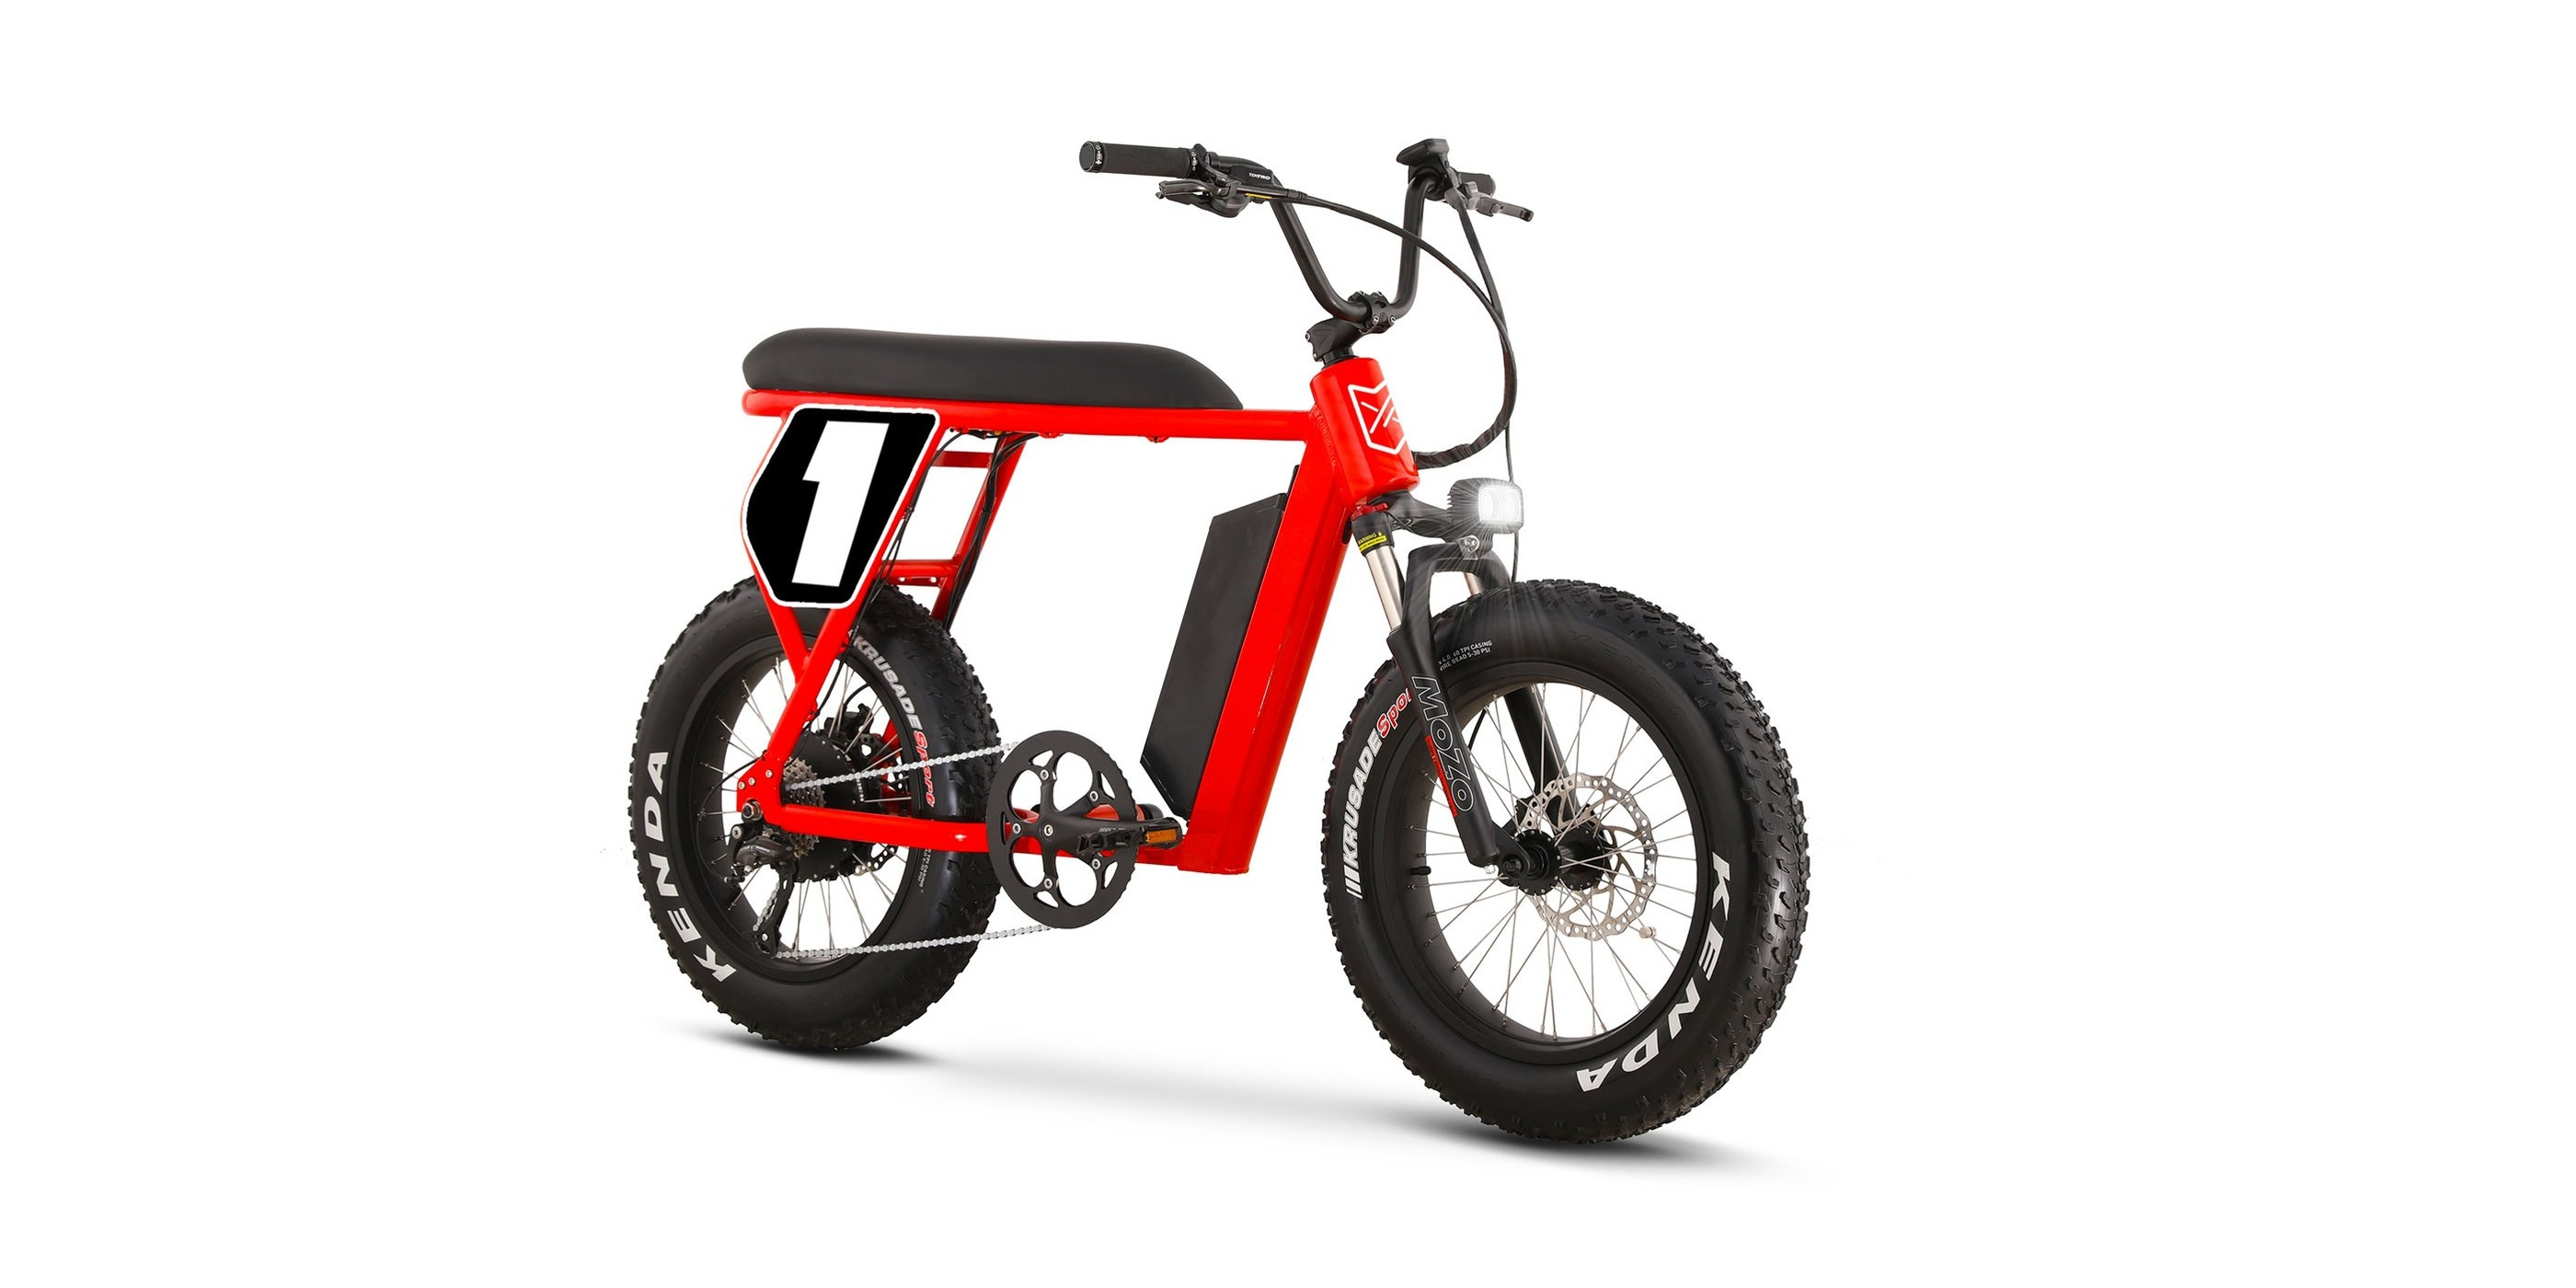 Juiced Bikes' new retro electric bicycle goes faster and farther for less money